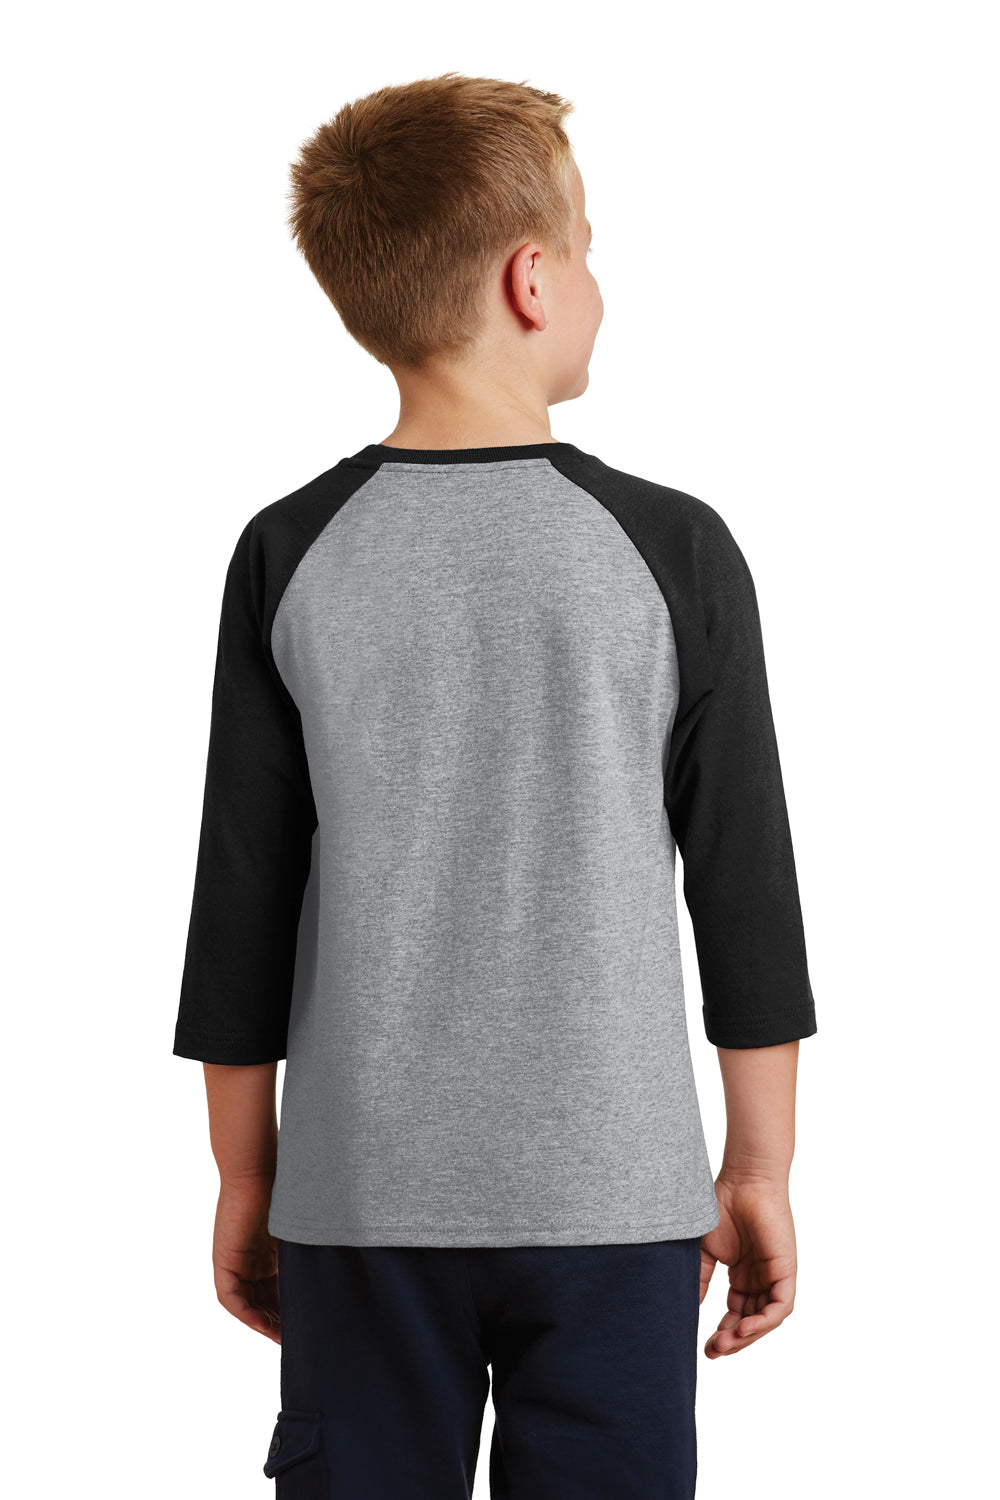 Port & Company PC55YRS Youth Core Moisture Wicking 3/4 Sleeve Crewneck T-Shirt Heather Grey/Black Back